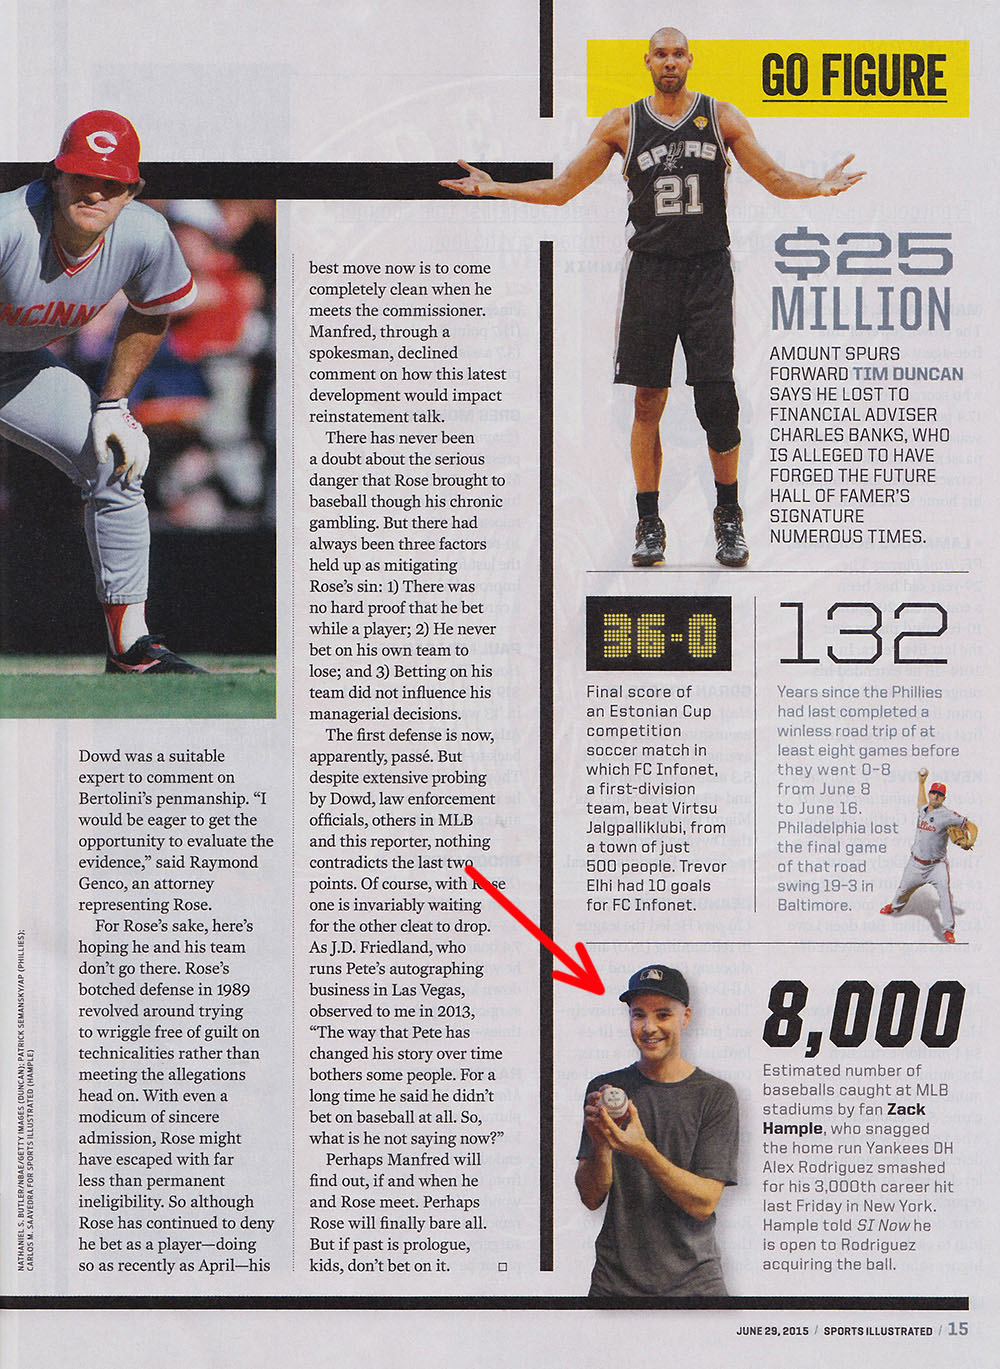 sports_illustrated3d.jpg